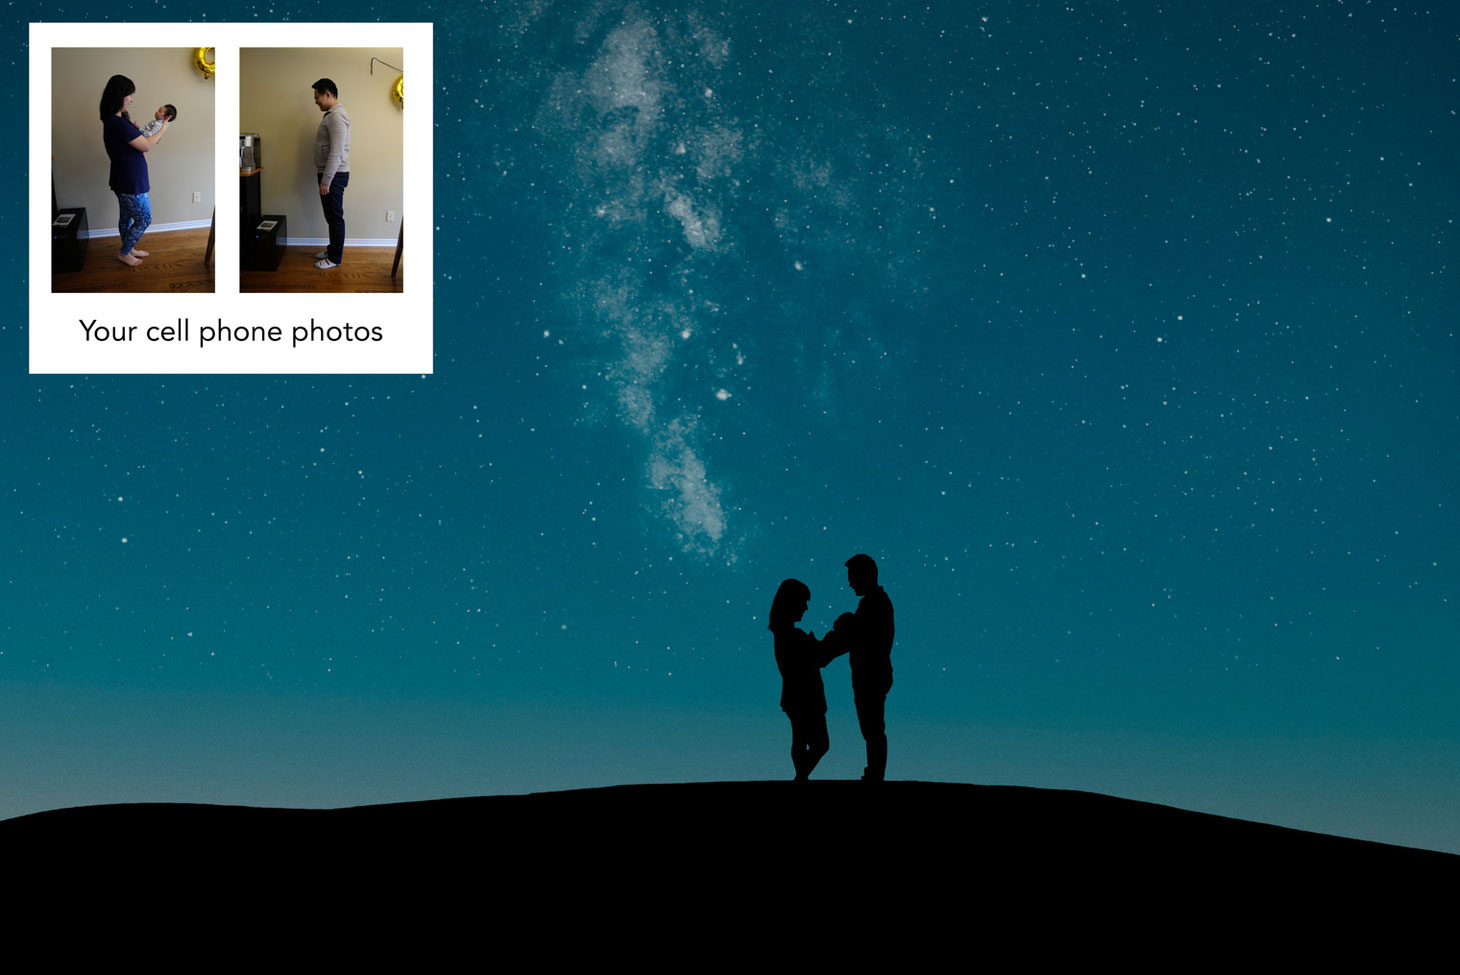 silhouette of mother, new baby, and father in front of a sky showing the milky way. Sky is blue. In the top left corner is a white box that reads: your cell phone photos. Also in the white box are two photos showing the mother and child and father .